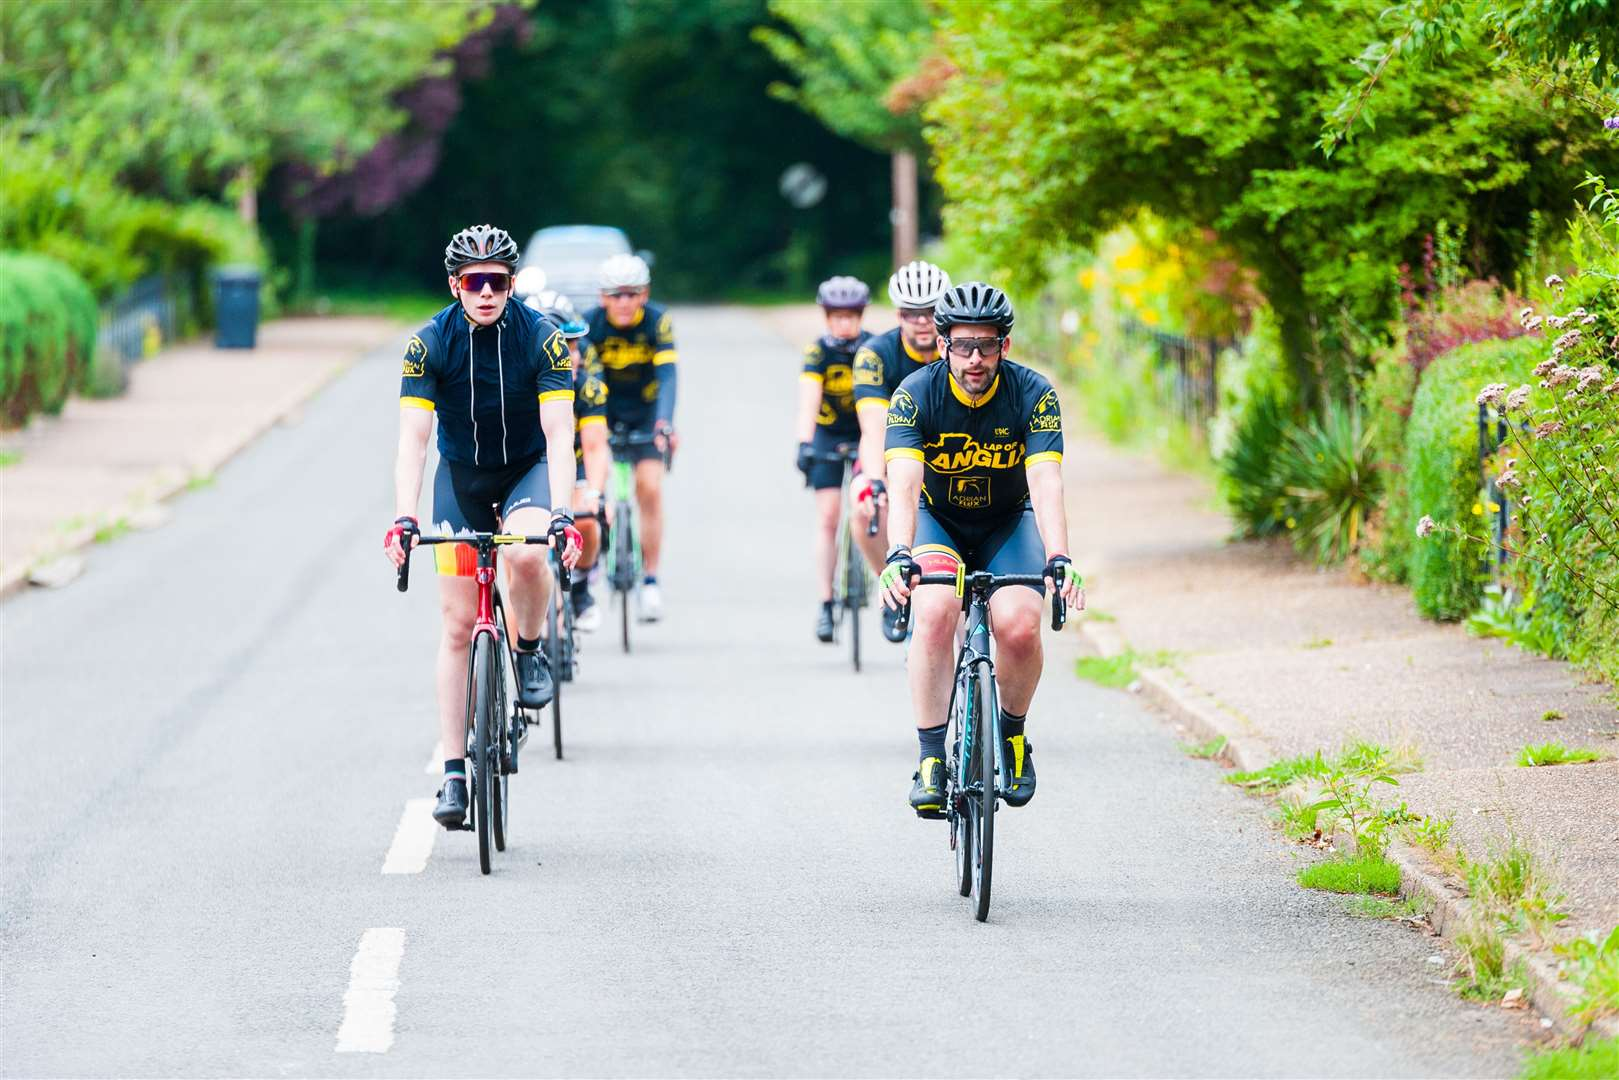 The Lap of Anglia cyclists heading through West Newton. (50337273)